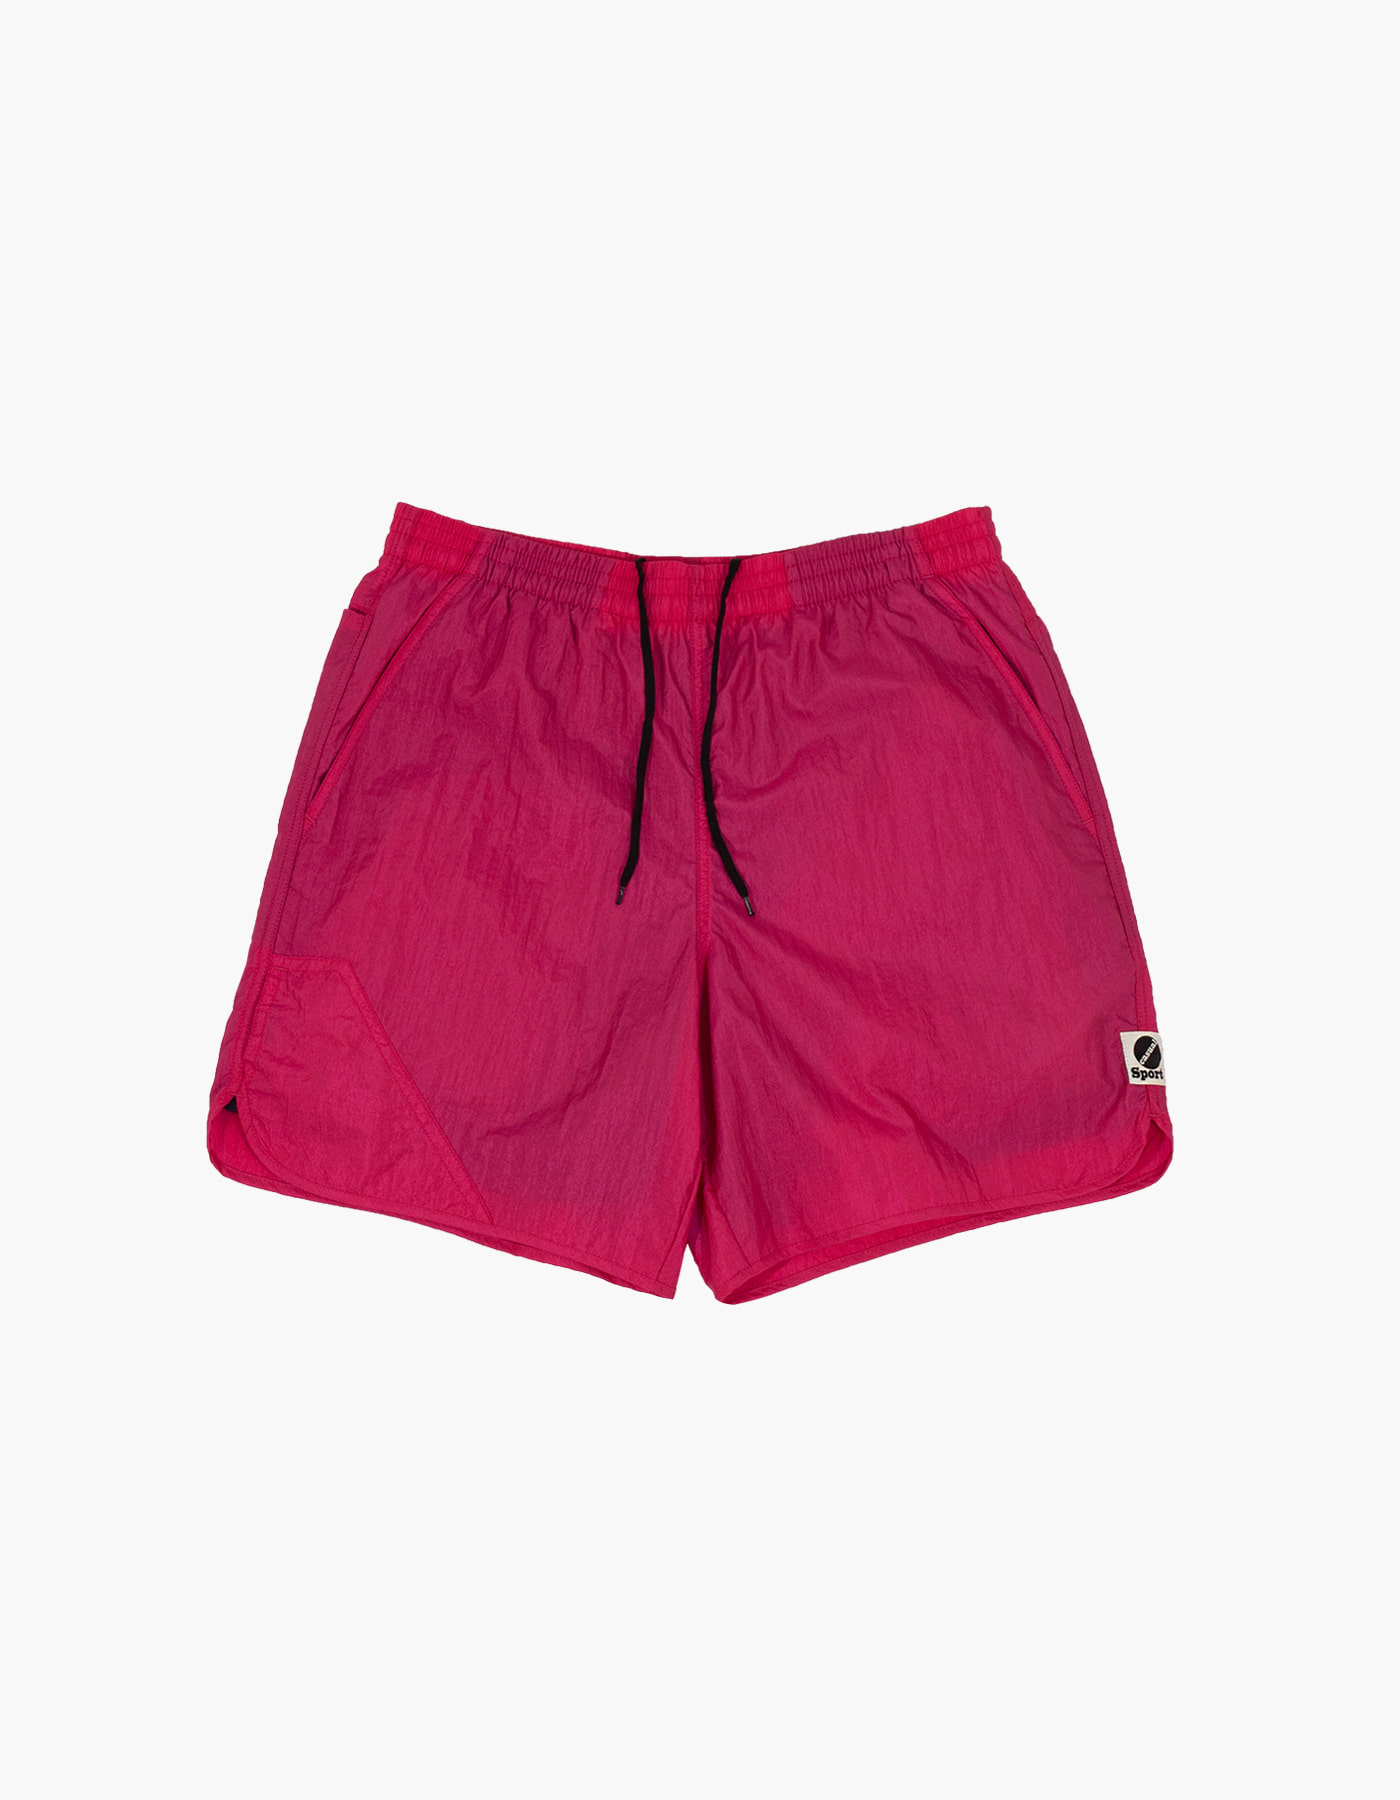 NYLON DIAMOND WASHER SHORTS / PLUM